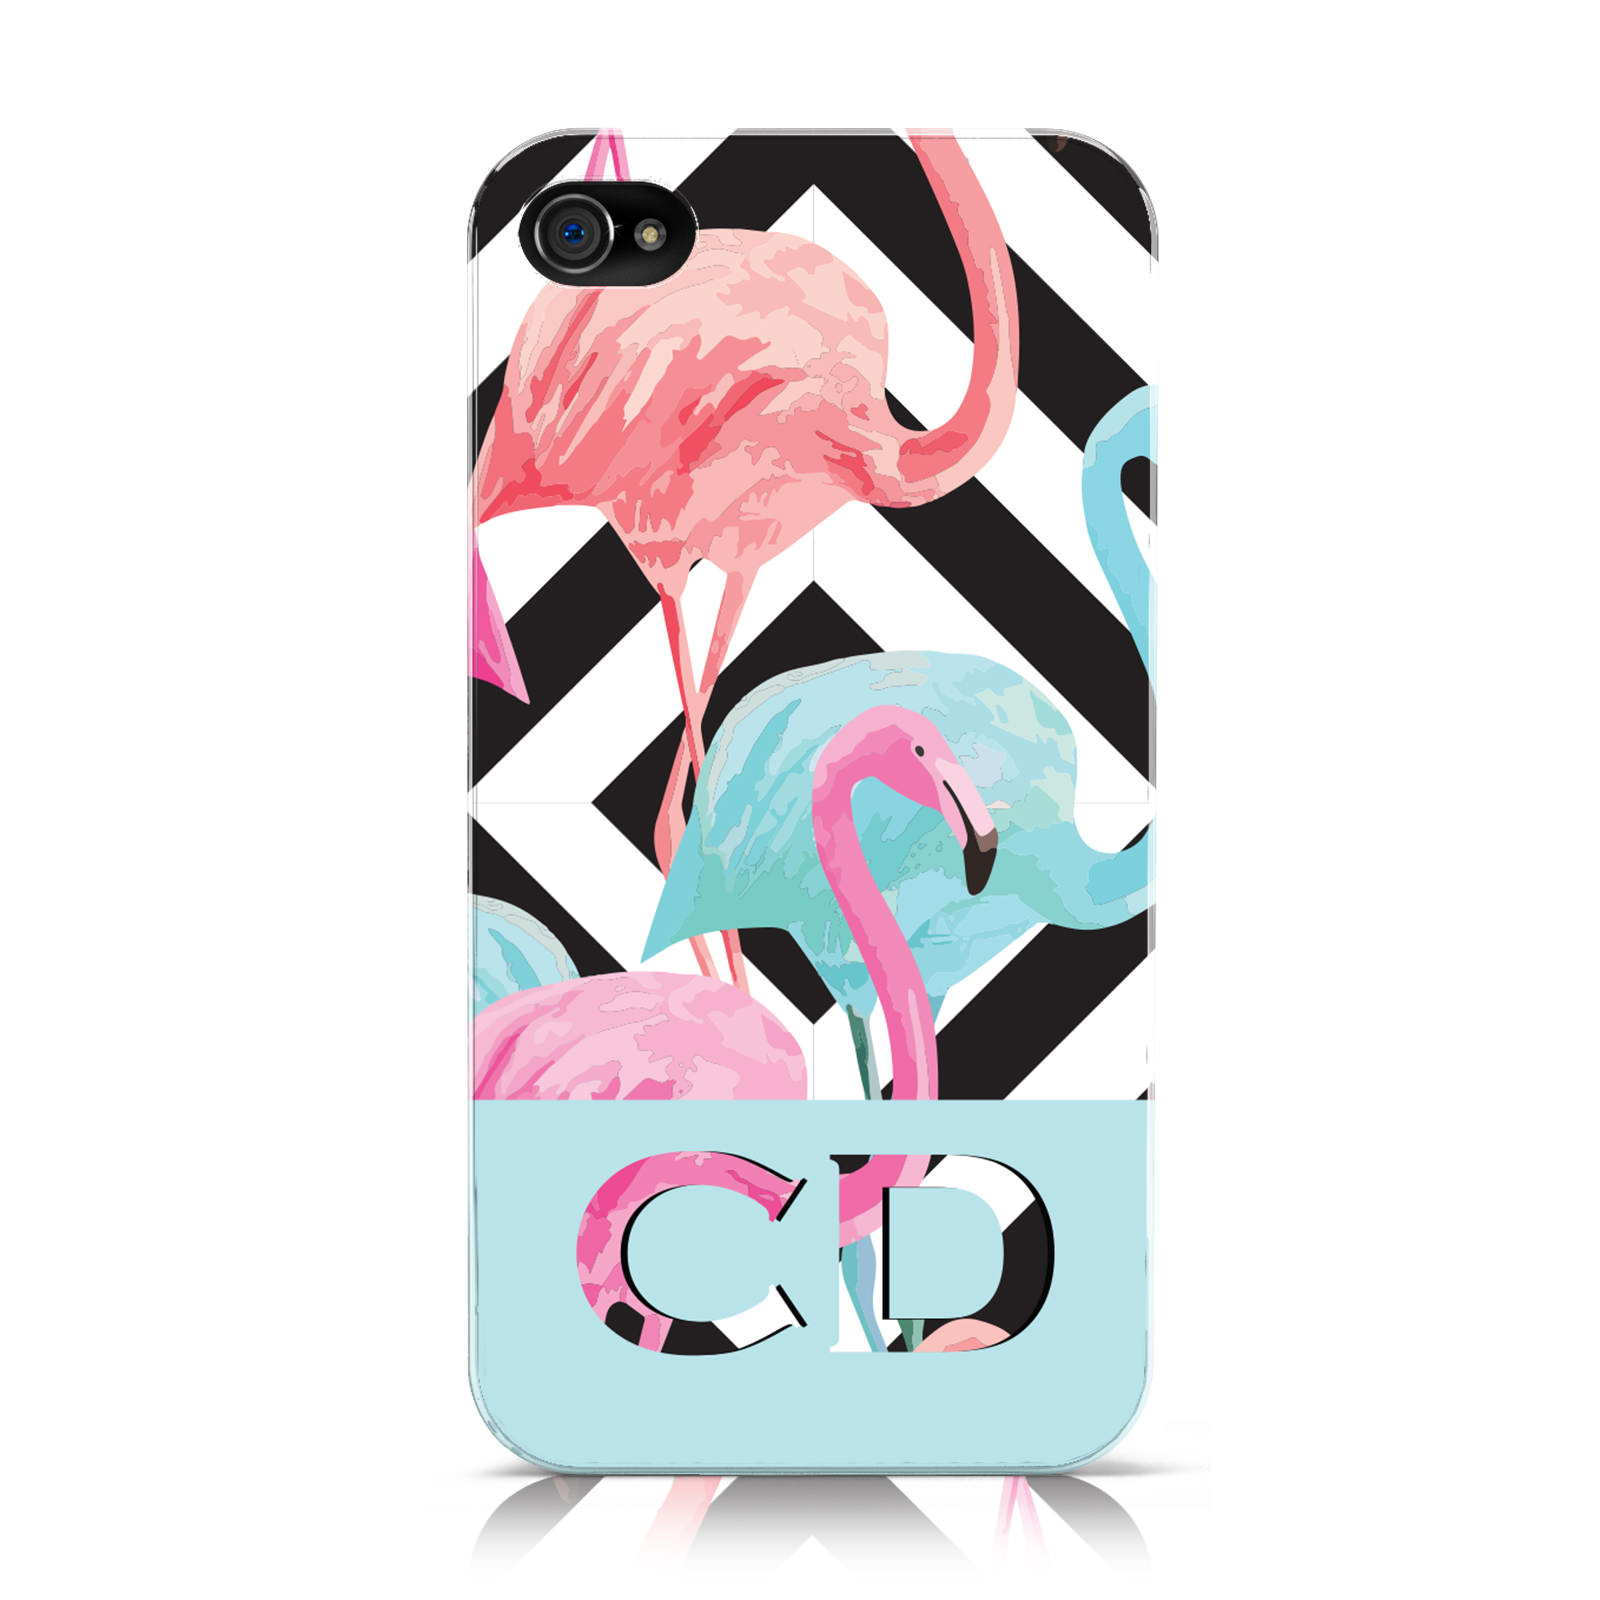 PERSONNALISE-INITIALES-FLAMANTS-ROSES-9-ETUI-POUR-APPLE-IPHONE